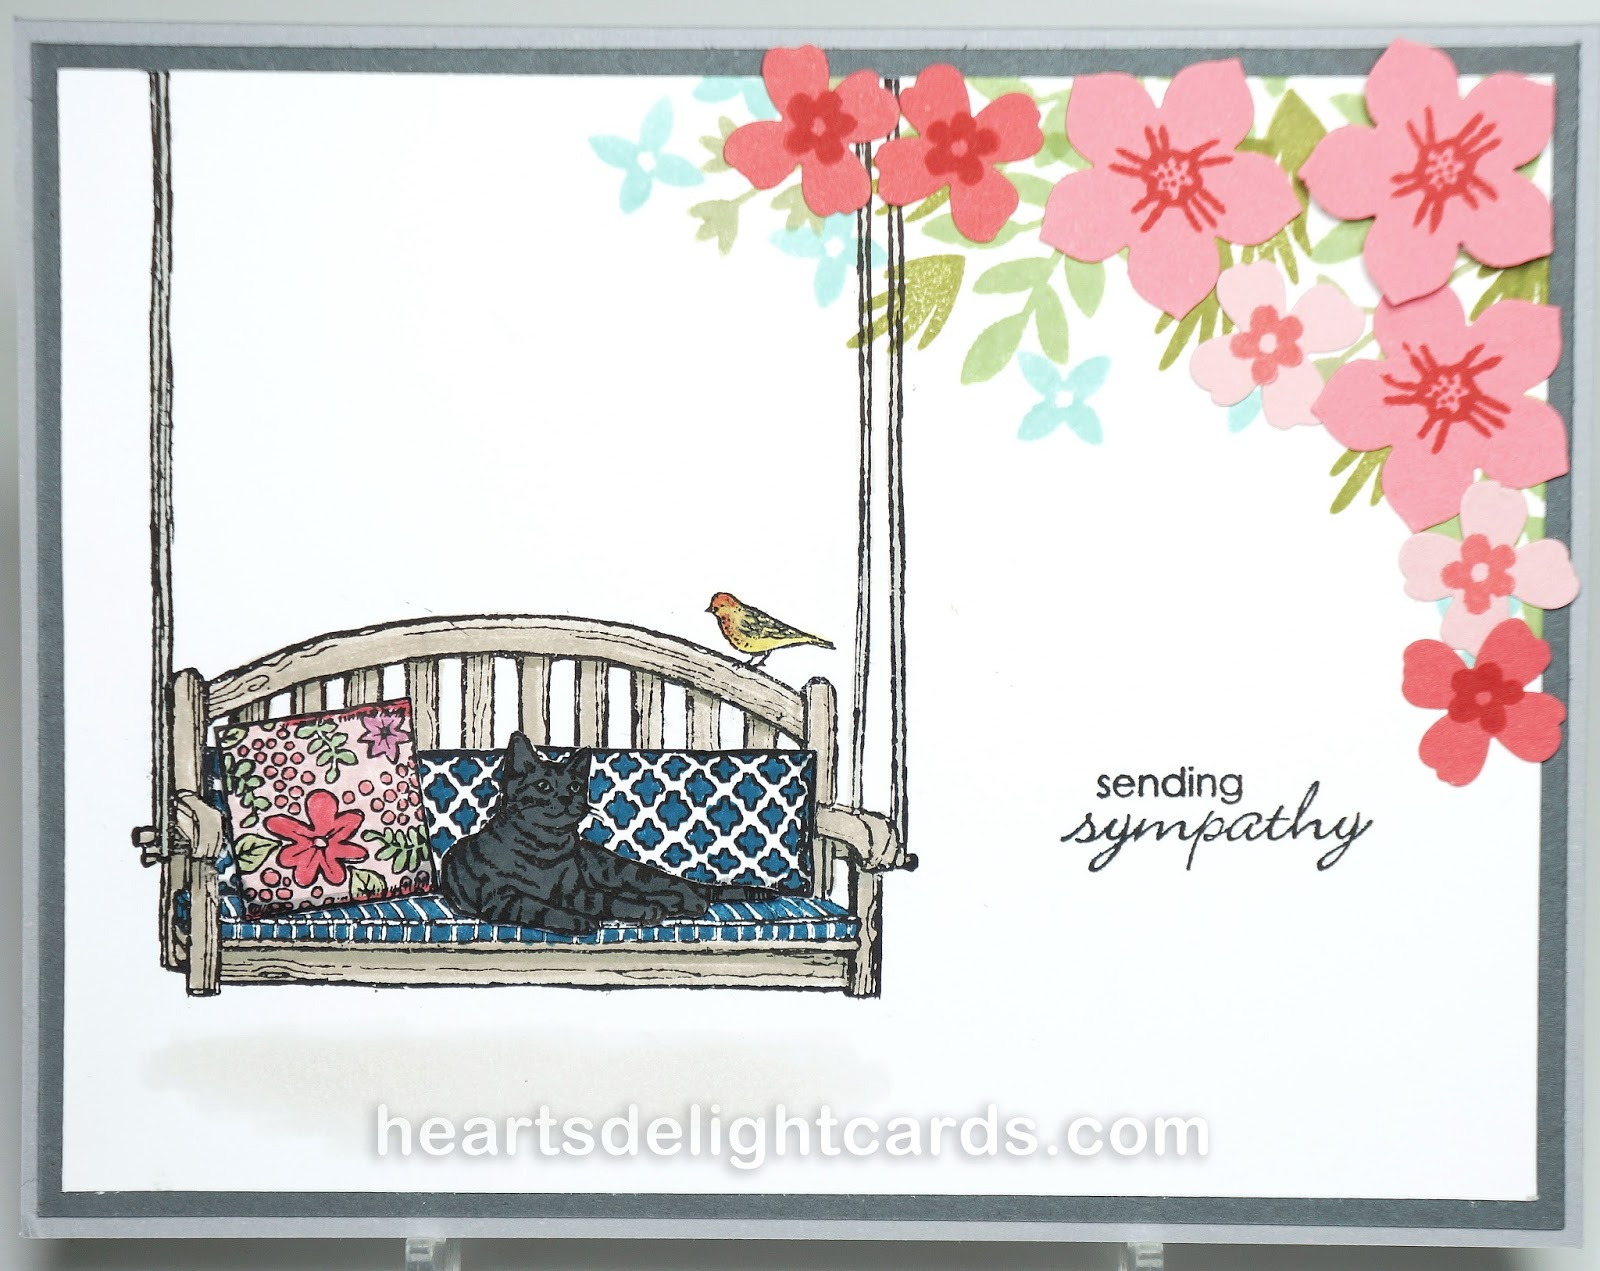 Hearts delight cards catalog sneak peek again heres a peek at another stamp set from the new catalog called sitting here this is a great versatile seti can see changing out the greeting and using kristyandbryce Images